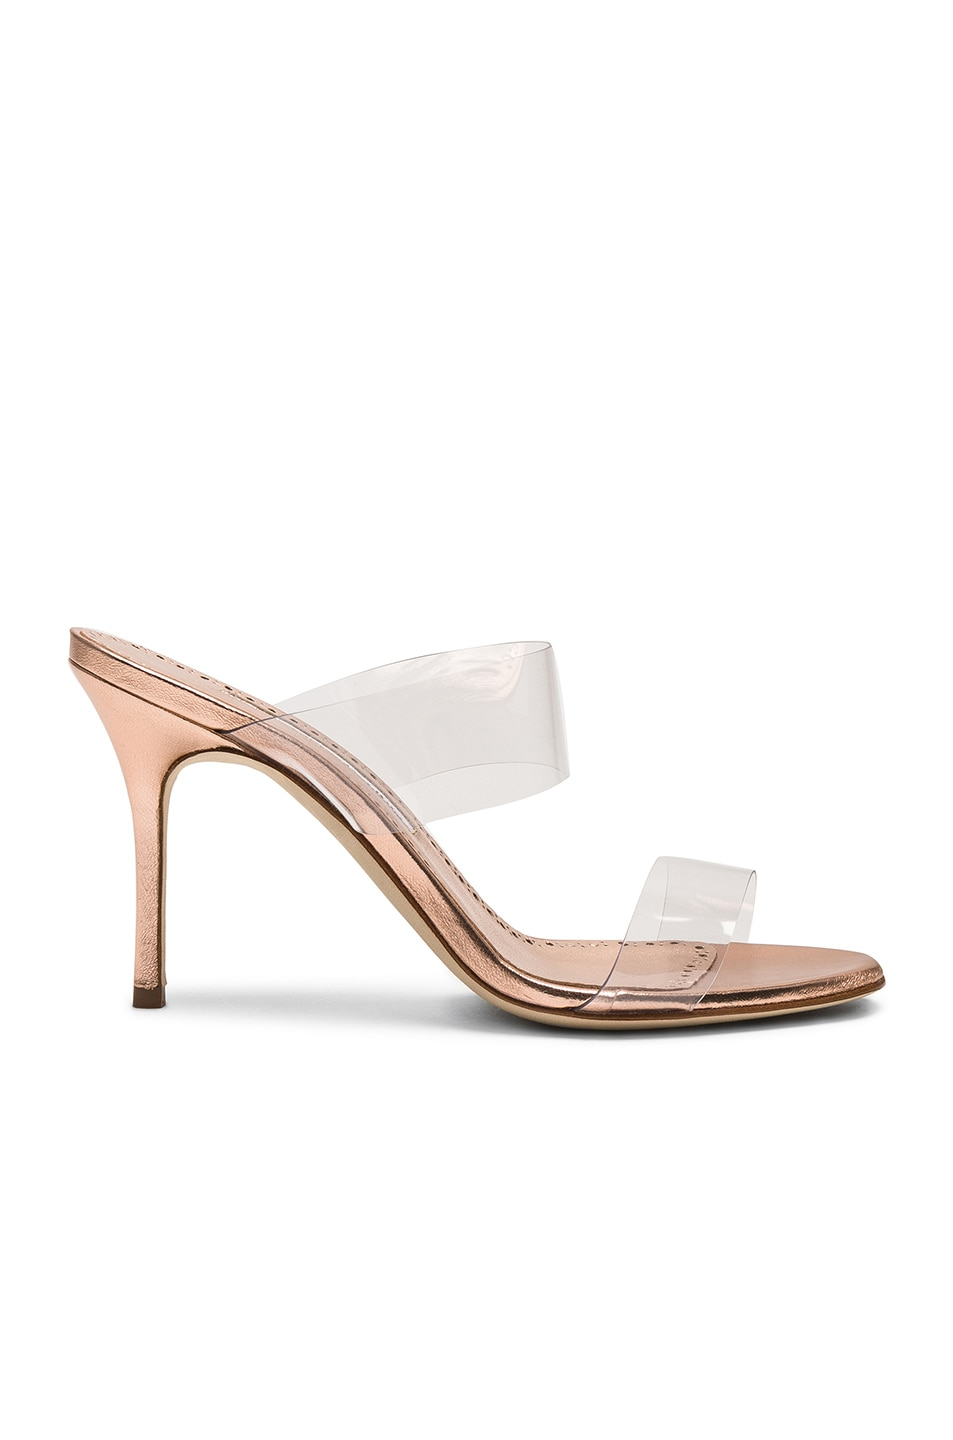 Image 1 of Manolo Blahnik Scolto 90 Mule in Cipria Rose Gold